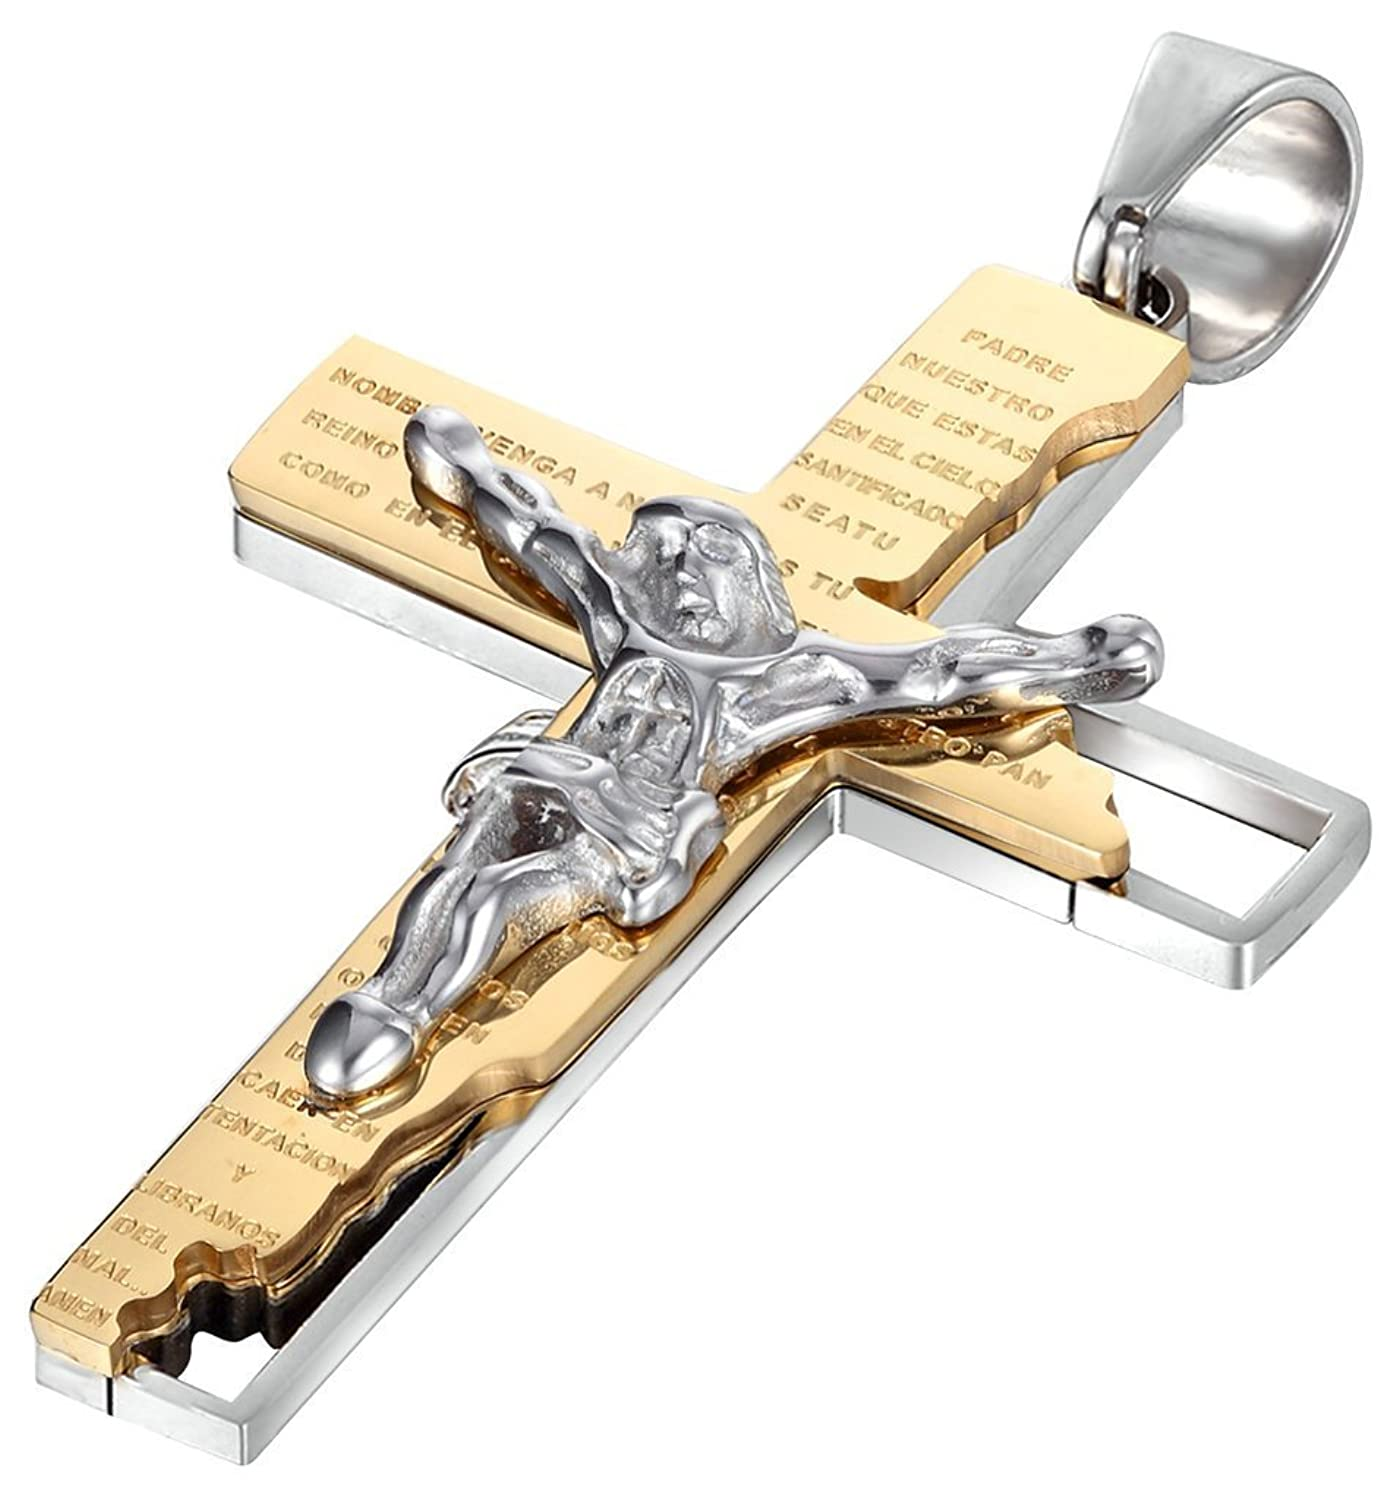 Jwoolw jewelry tainless Steel Men Pendant Necklace Cross Jesus Crucifix Rood Bible Prayer with 23 inch Chain